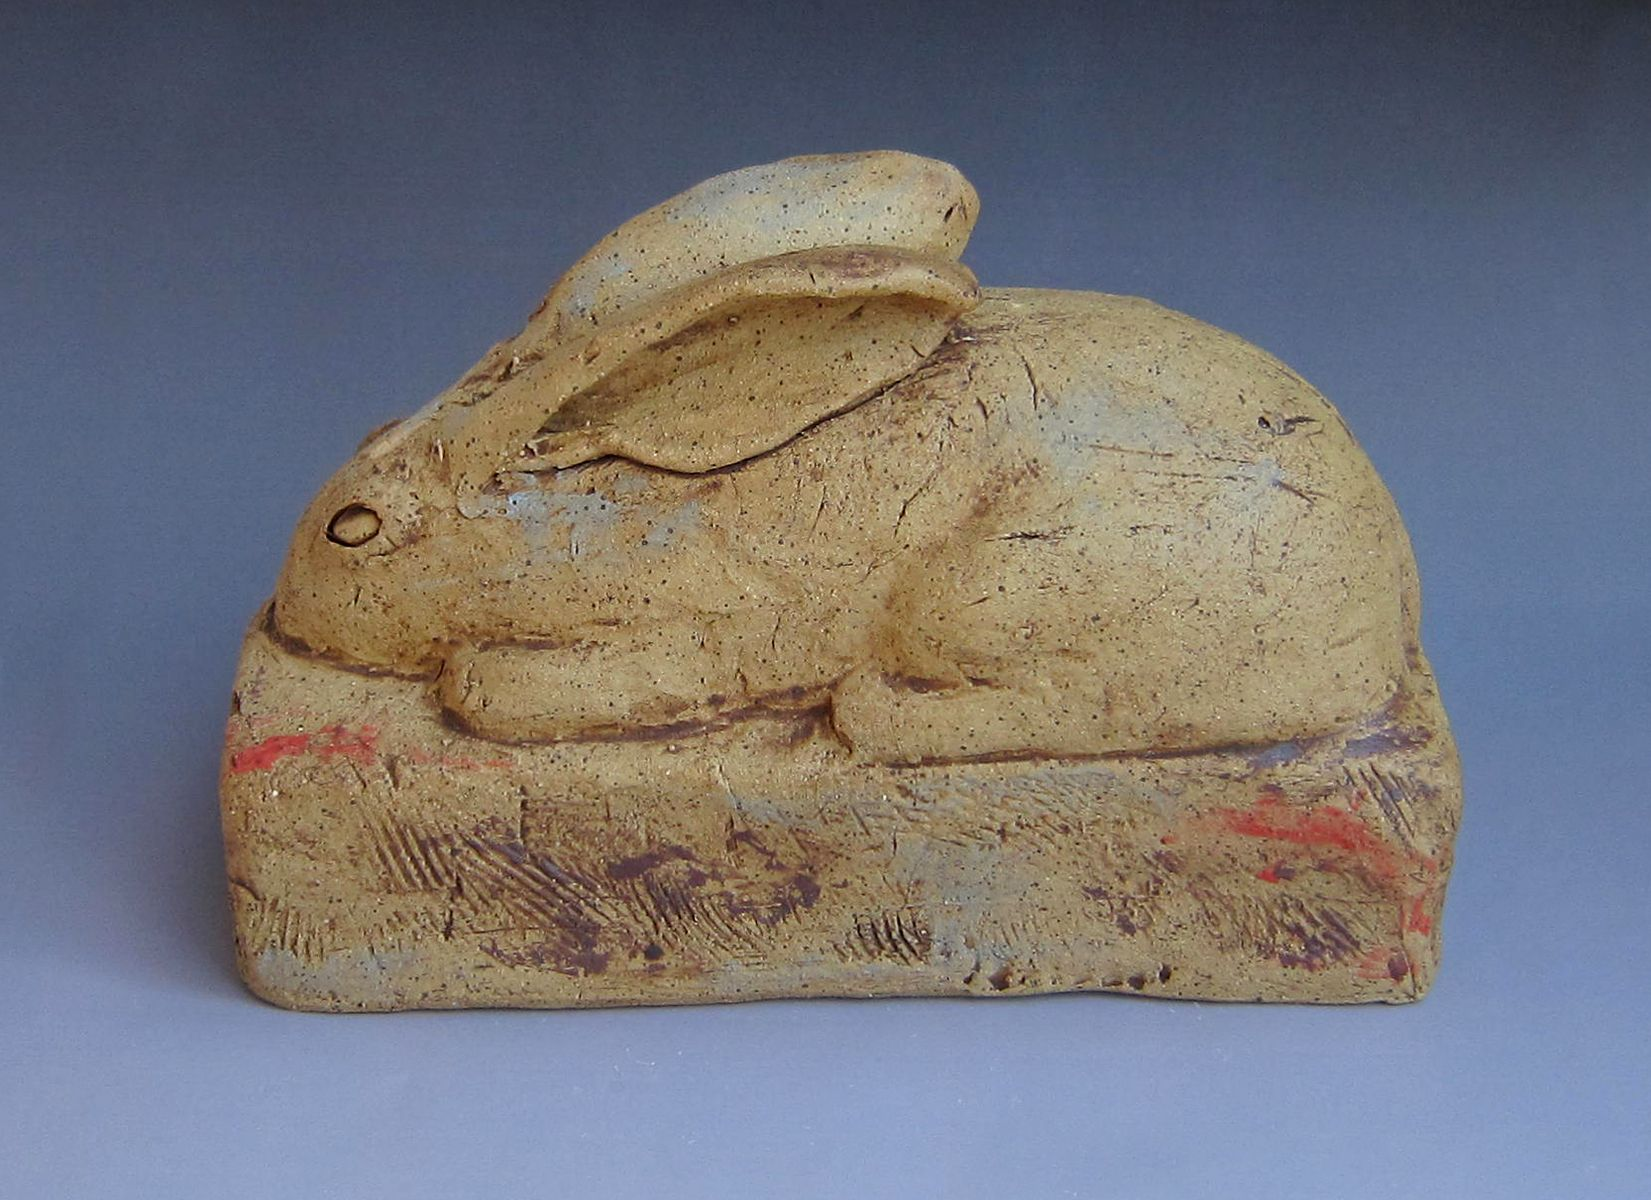 A rabbit brick. One of many... Handbuilt ceramic. Fred Yokel